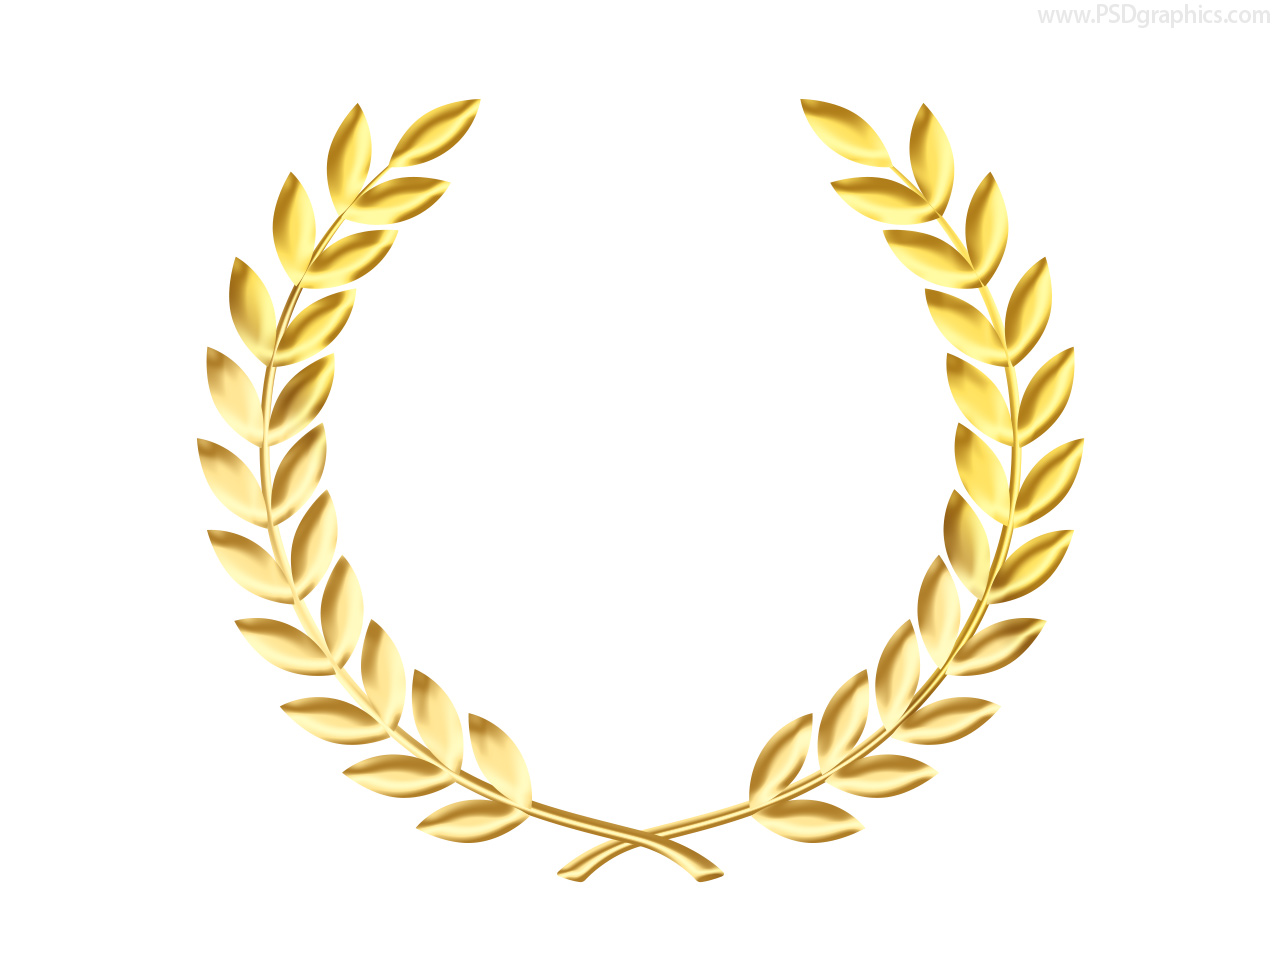 Gold laurel wreath medal template psd psdgraphics for Laurel leaf crown template